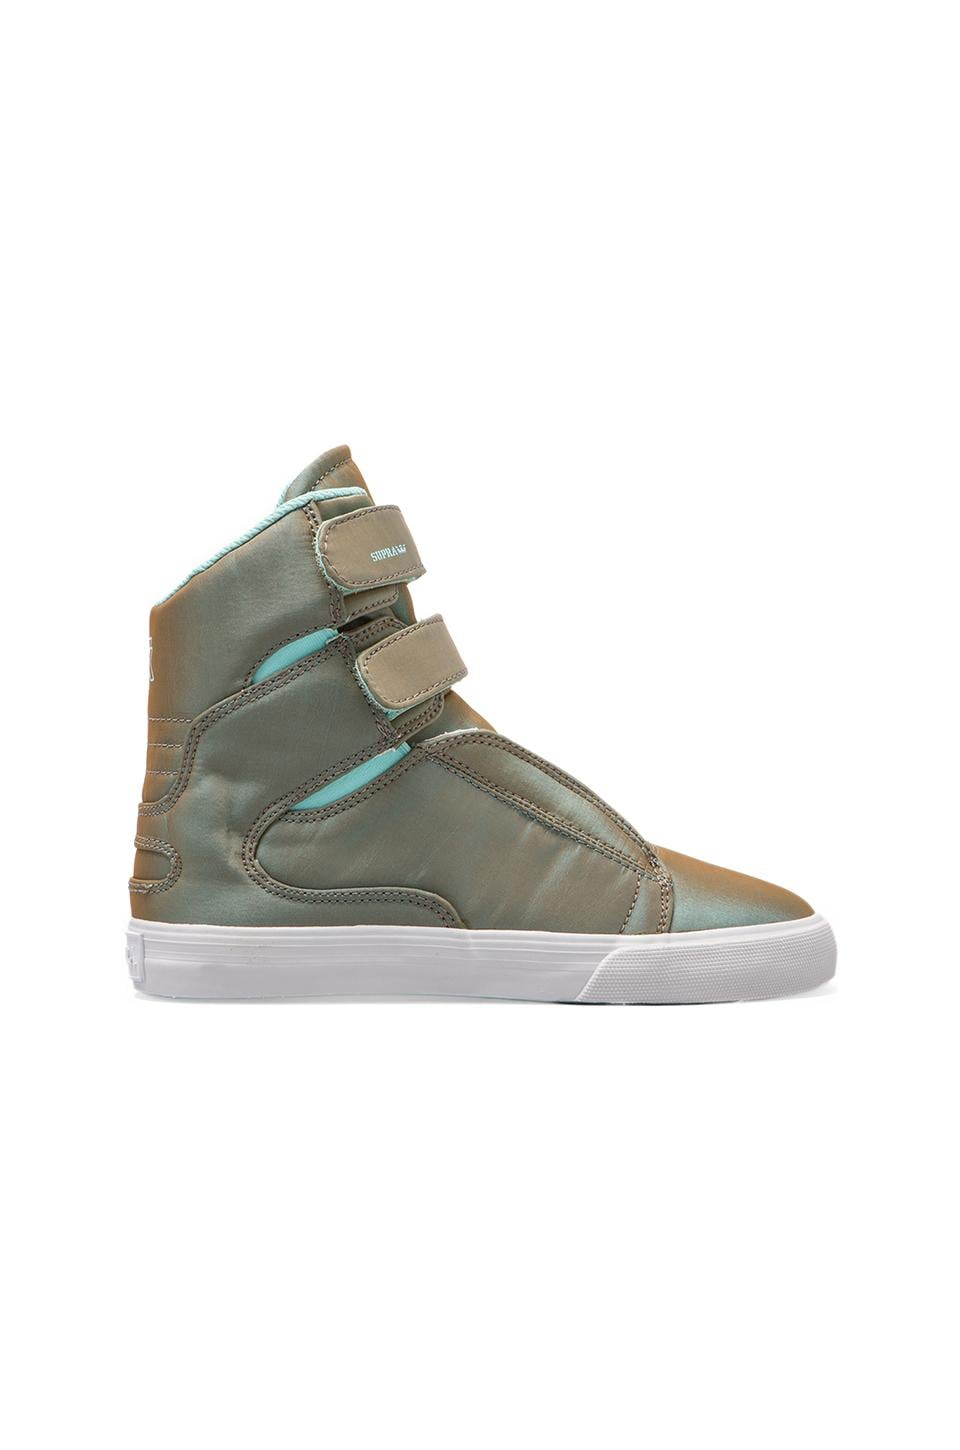 Supra Society Sneaker in Iridescent Turquoise